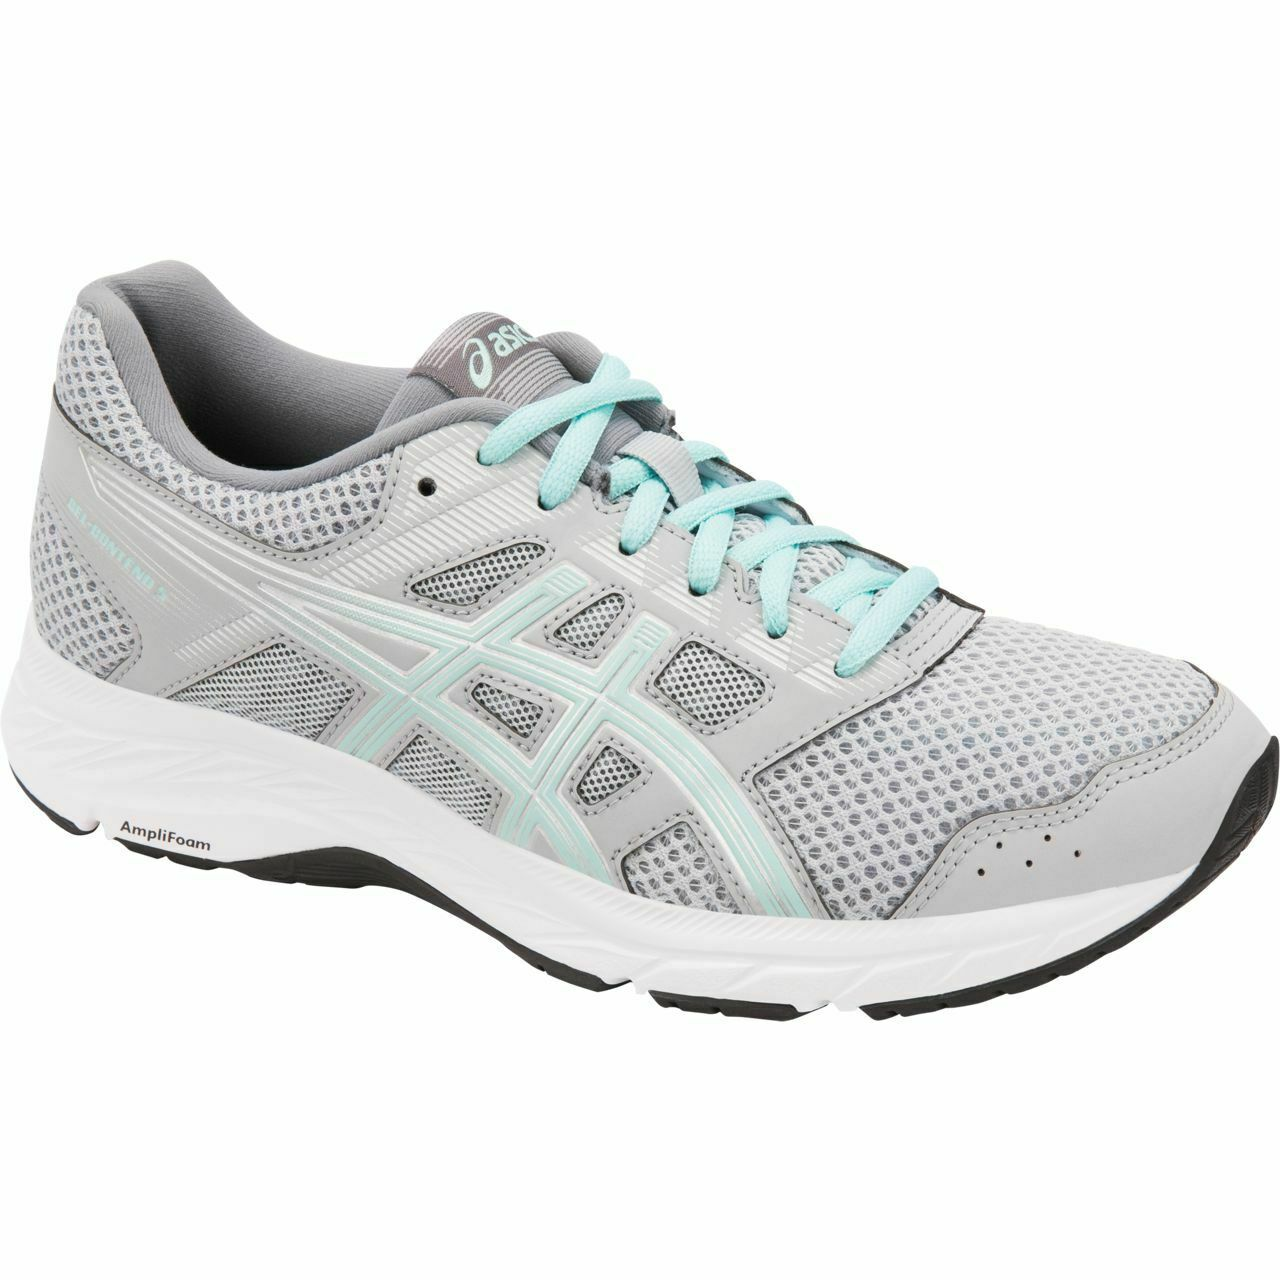 LATEST RELEASE Asics Gel Contend 5 Womens Running shoes (B) (020)